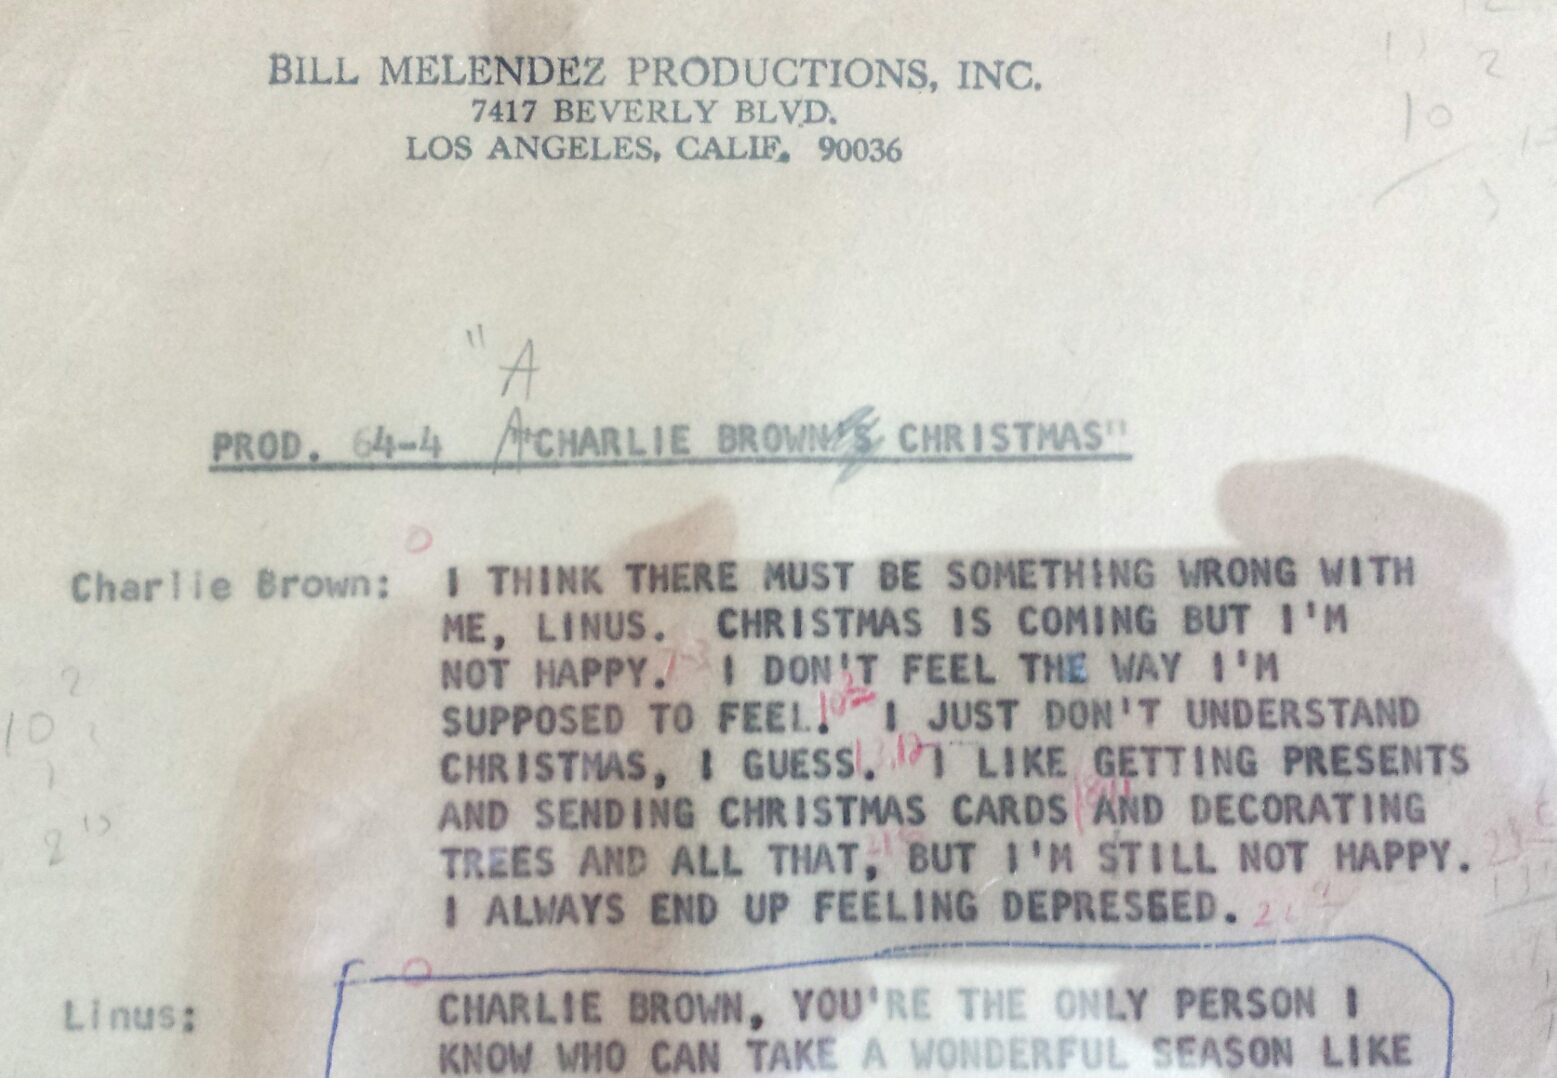 i got to see the magic box whose contents i didnt touch and an employee handled with white gloves inside were strips schulz drew for an abandoned series - A Charlie Brown Christmas Script